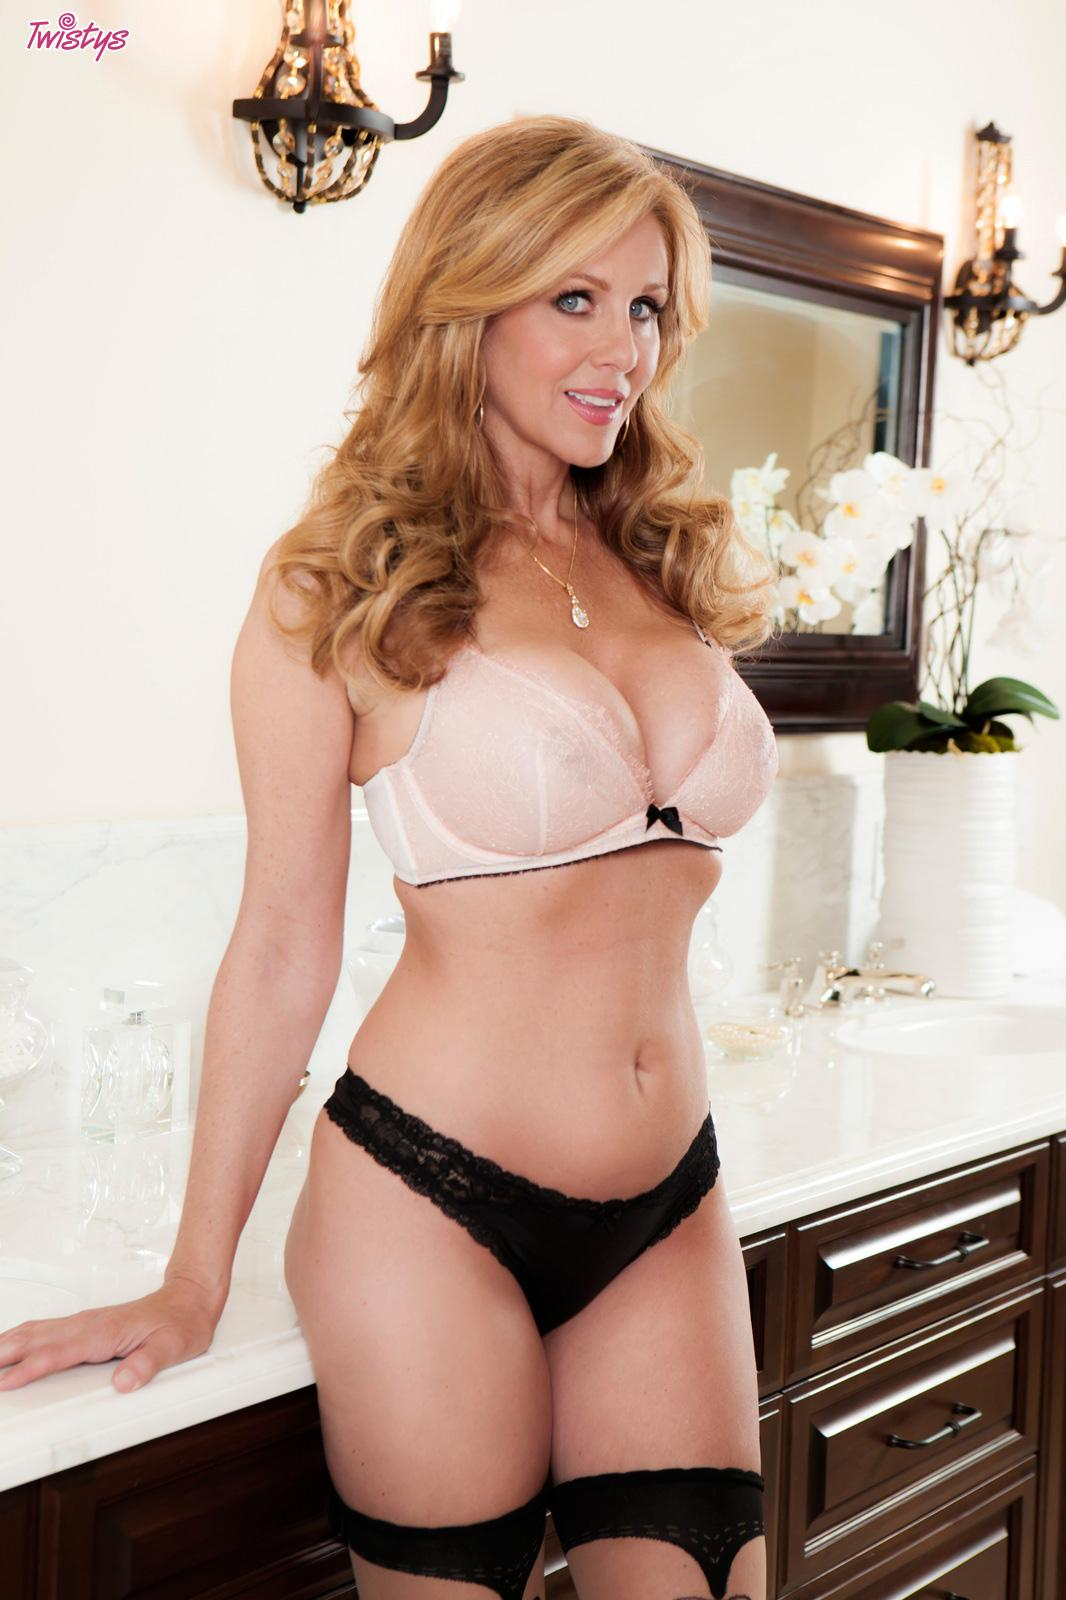 image Busty milf julia ann worships her hot big tits just for you